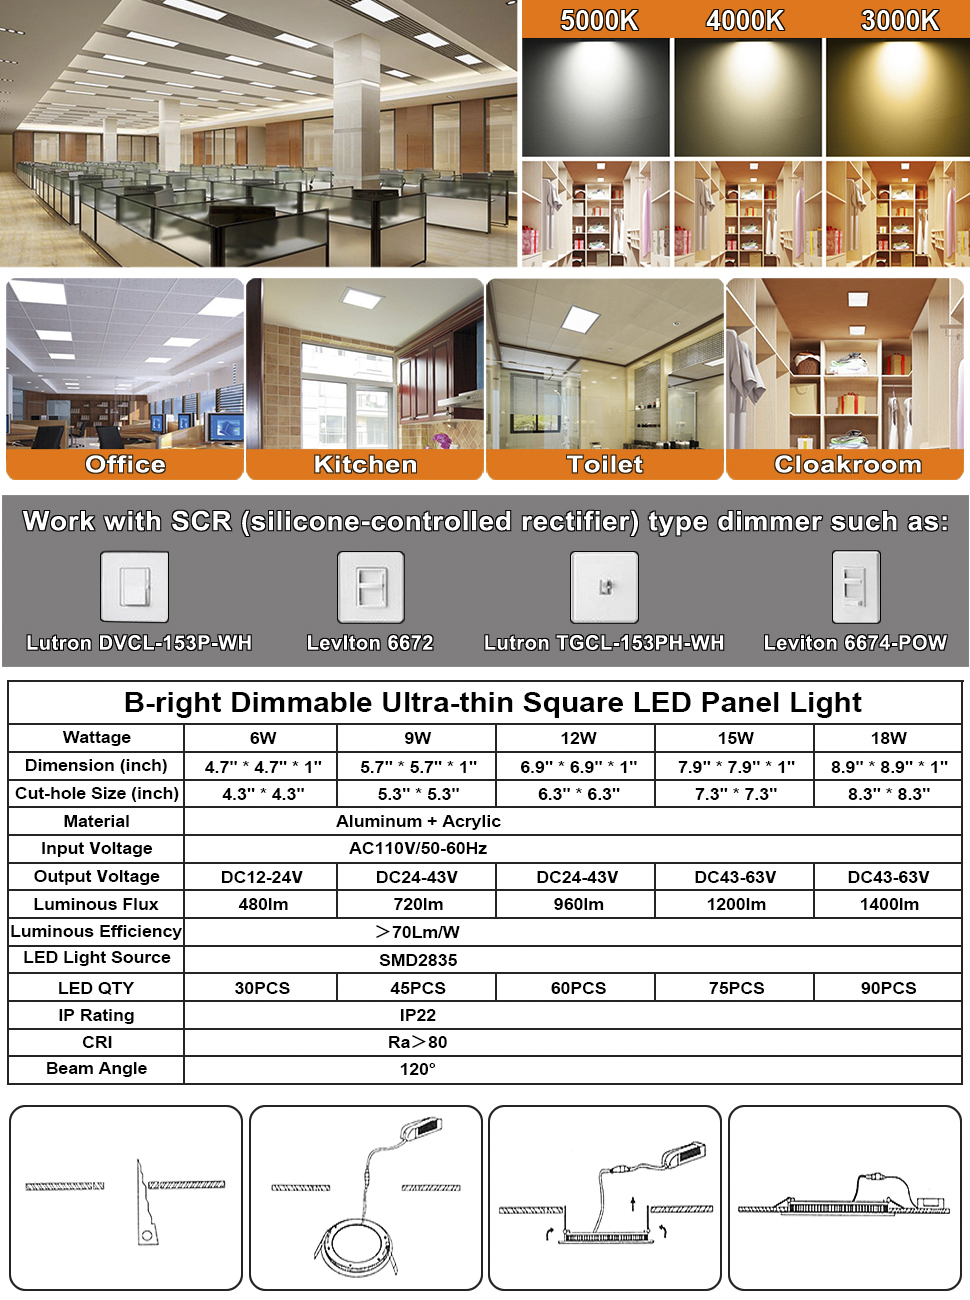 B-right 18W 8-inch Dimmable Square LED Panel Light Ultra-thin 1400lm 3000K Warm White LED Recessed Ceiling Lights for Home Office Commercial Lighting